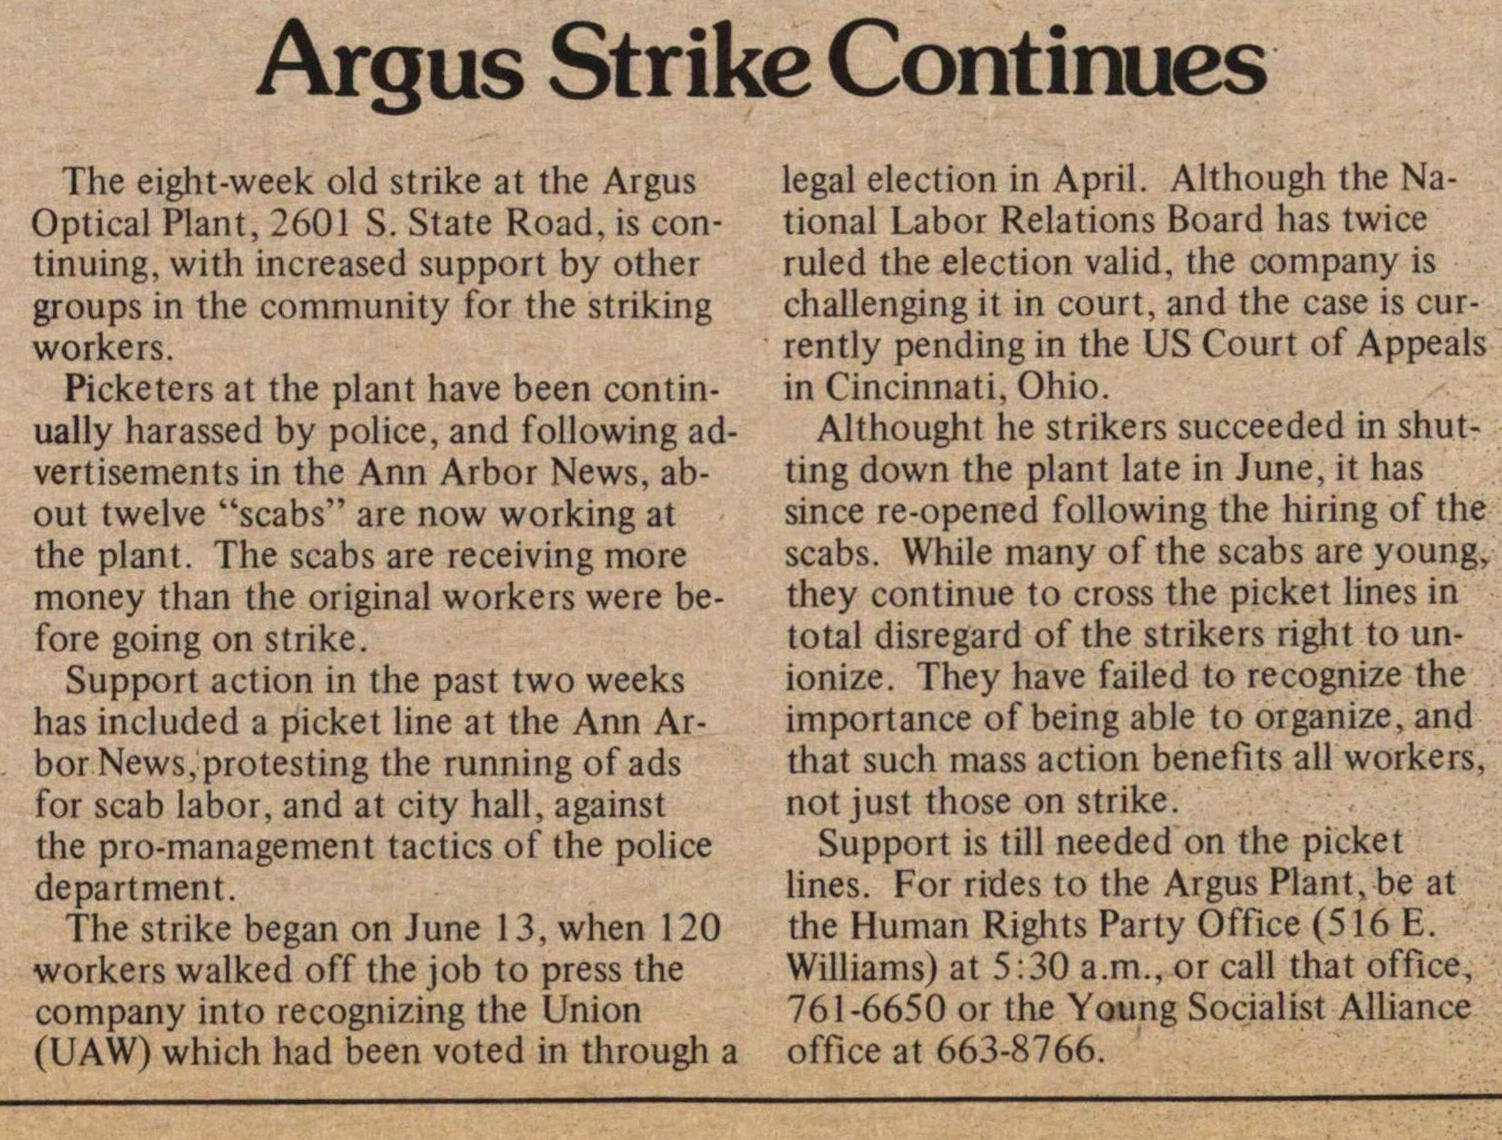 Argus Strike Continues image